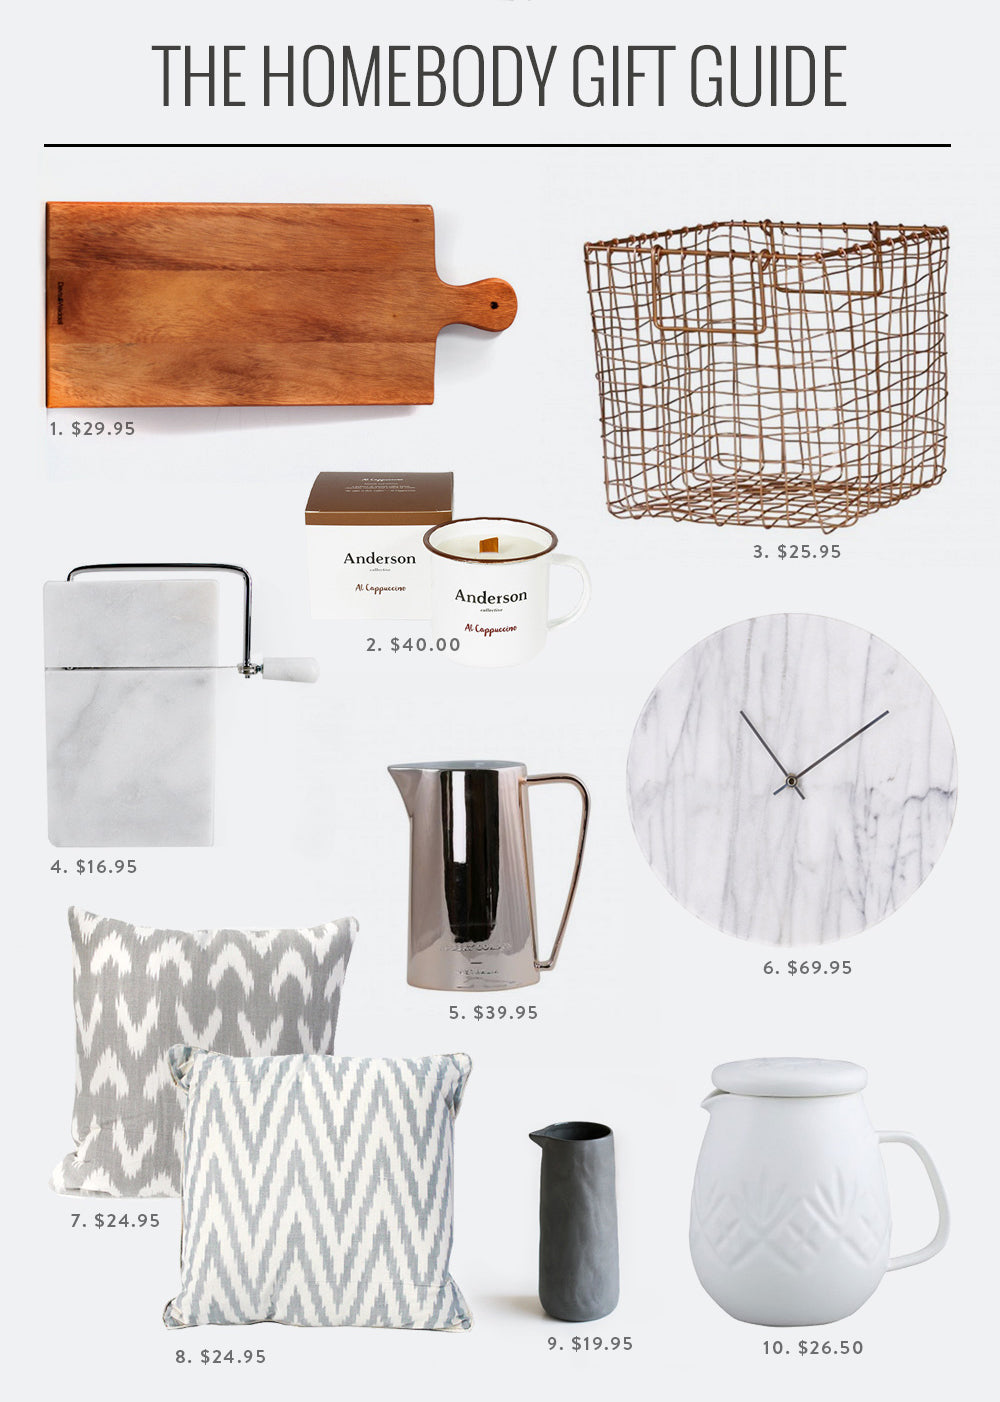 F&F Gift Guide: The Homebody